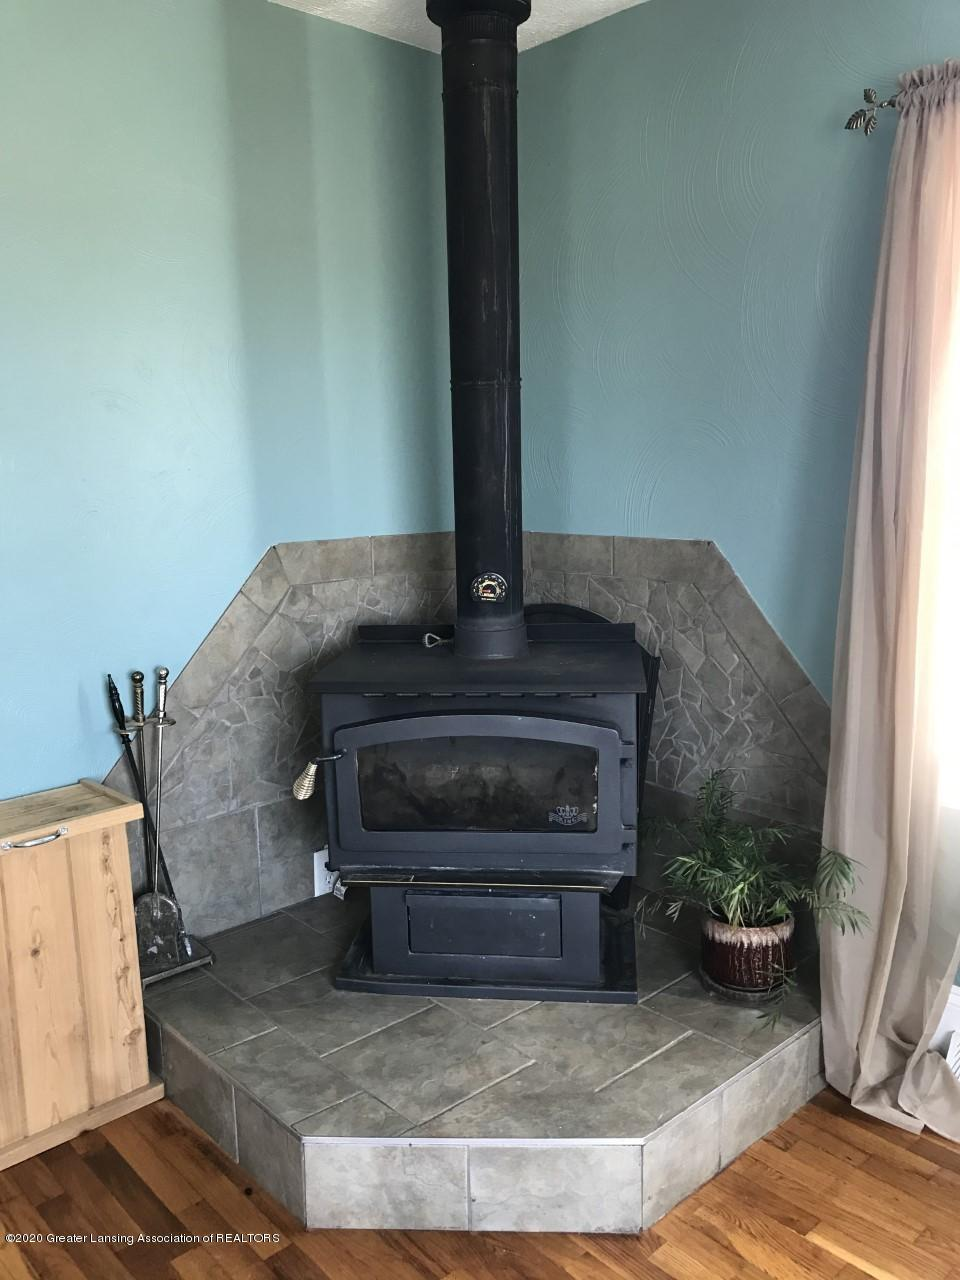 1011 W Silvers Rd - Wood Stove - 6